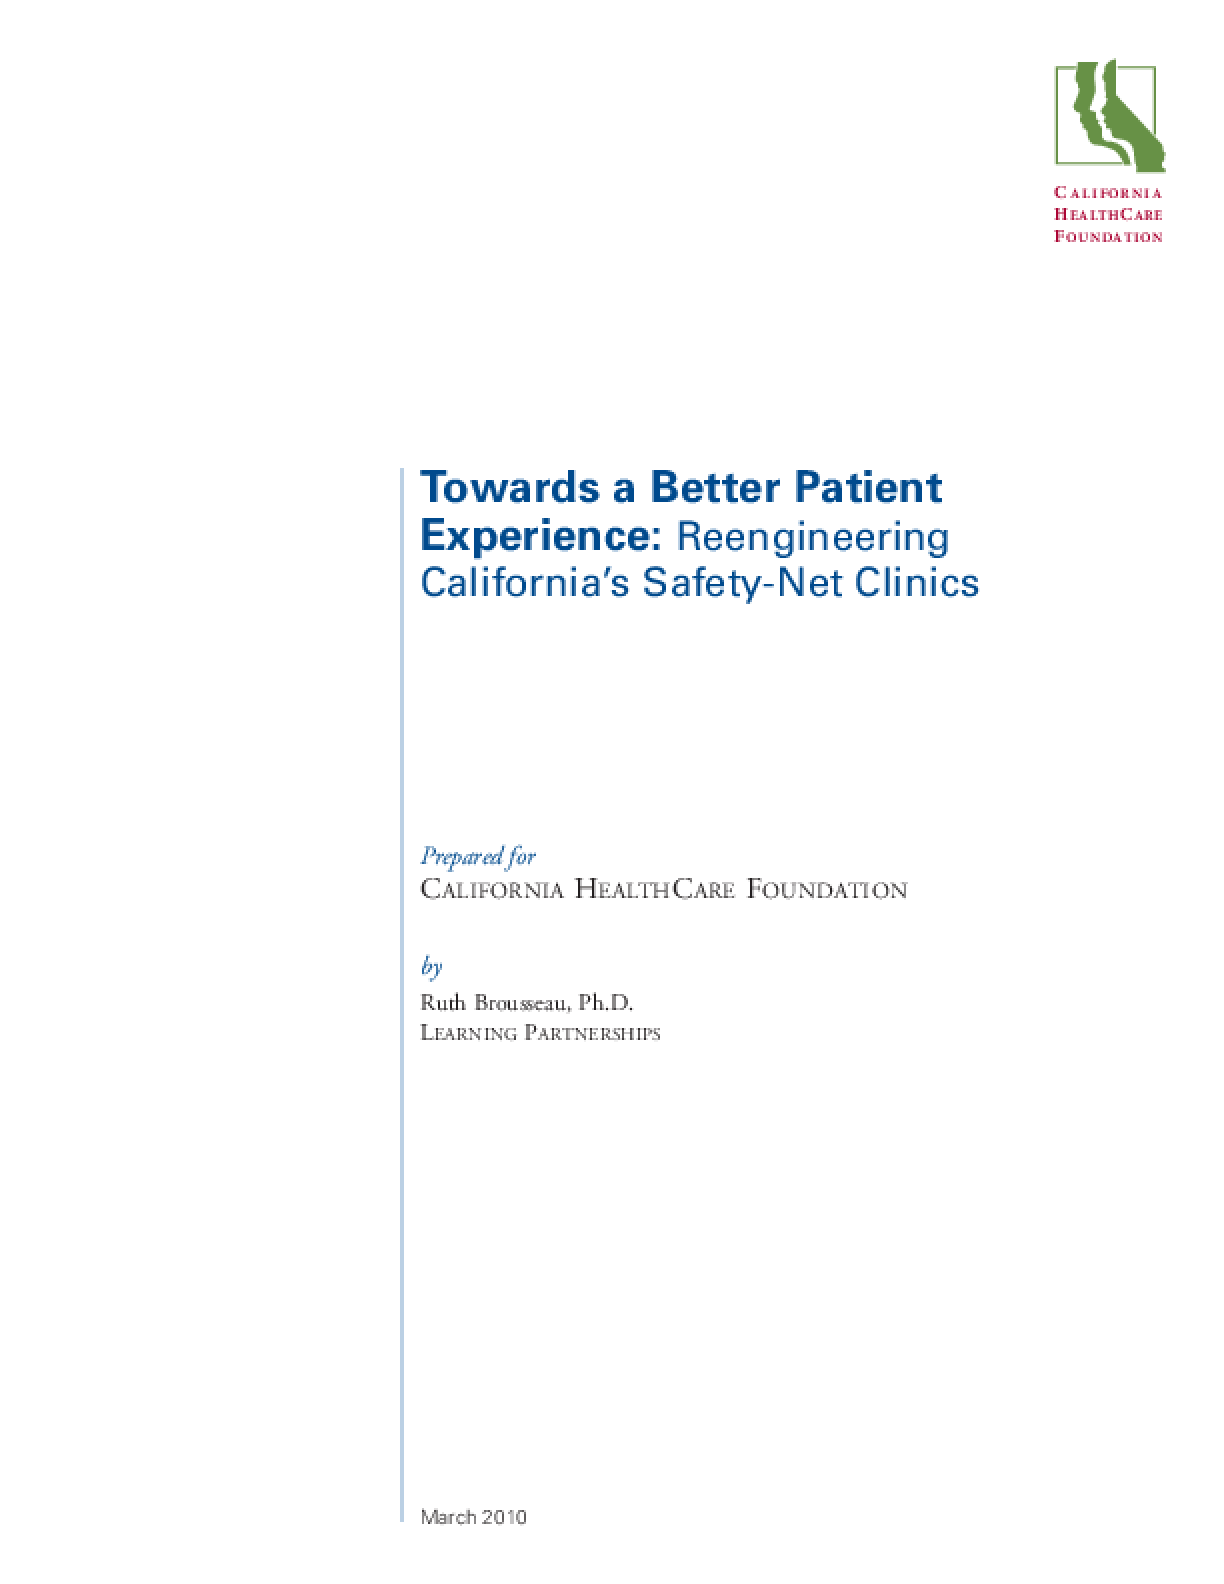 Towards a Better Patient Experience: Reengineering California's Safety-Net Clinics